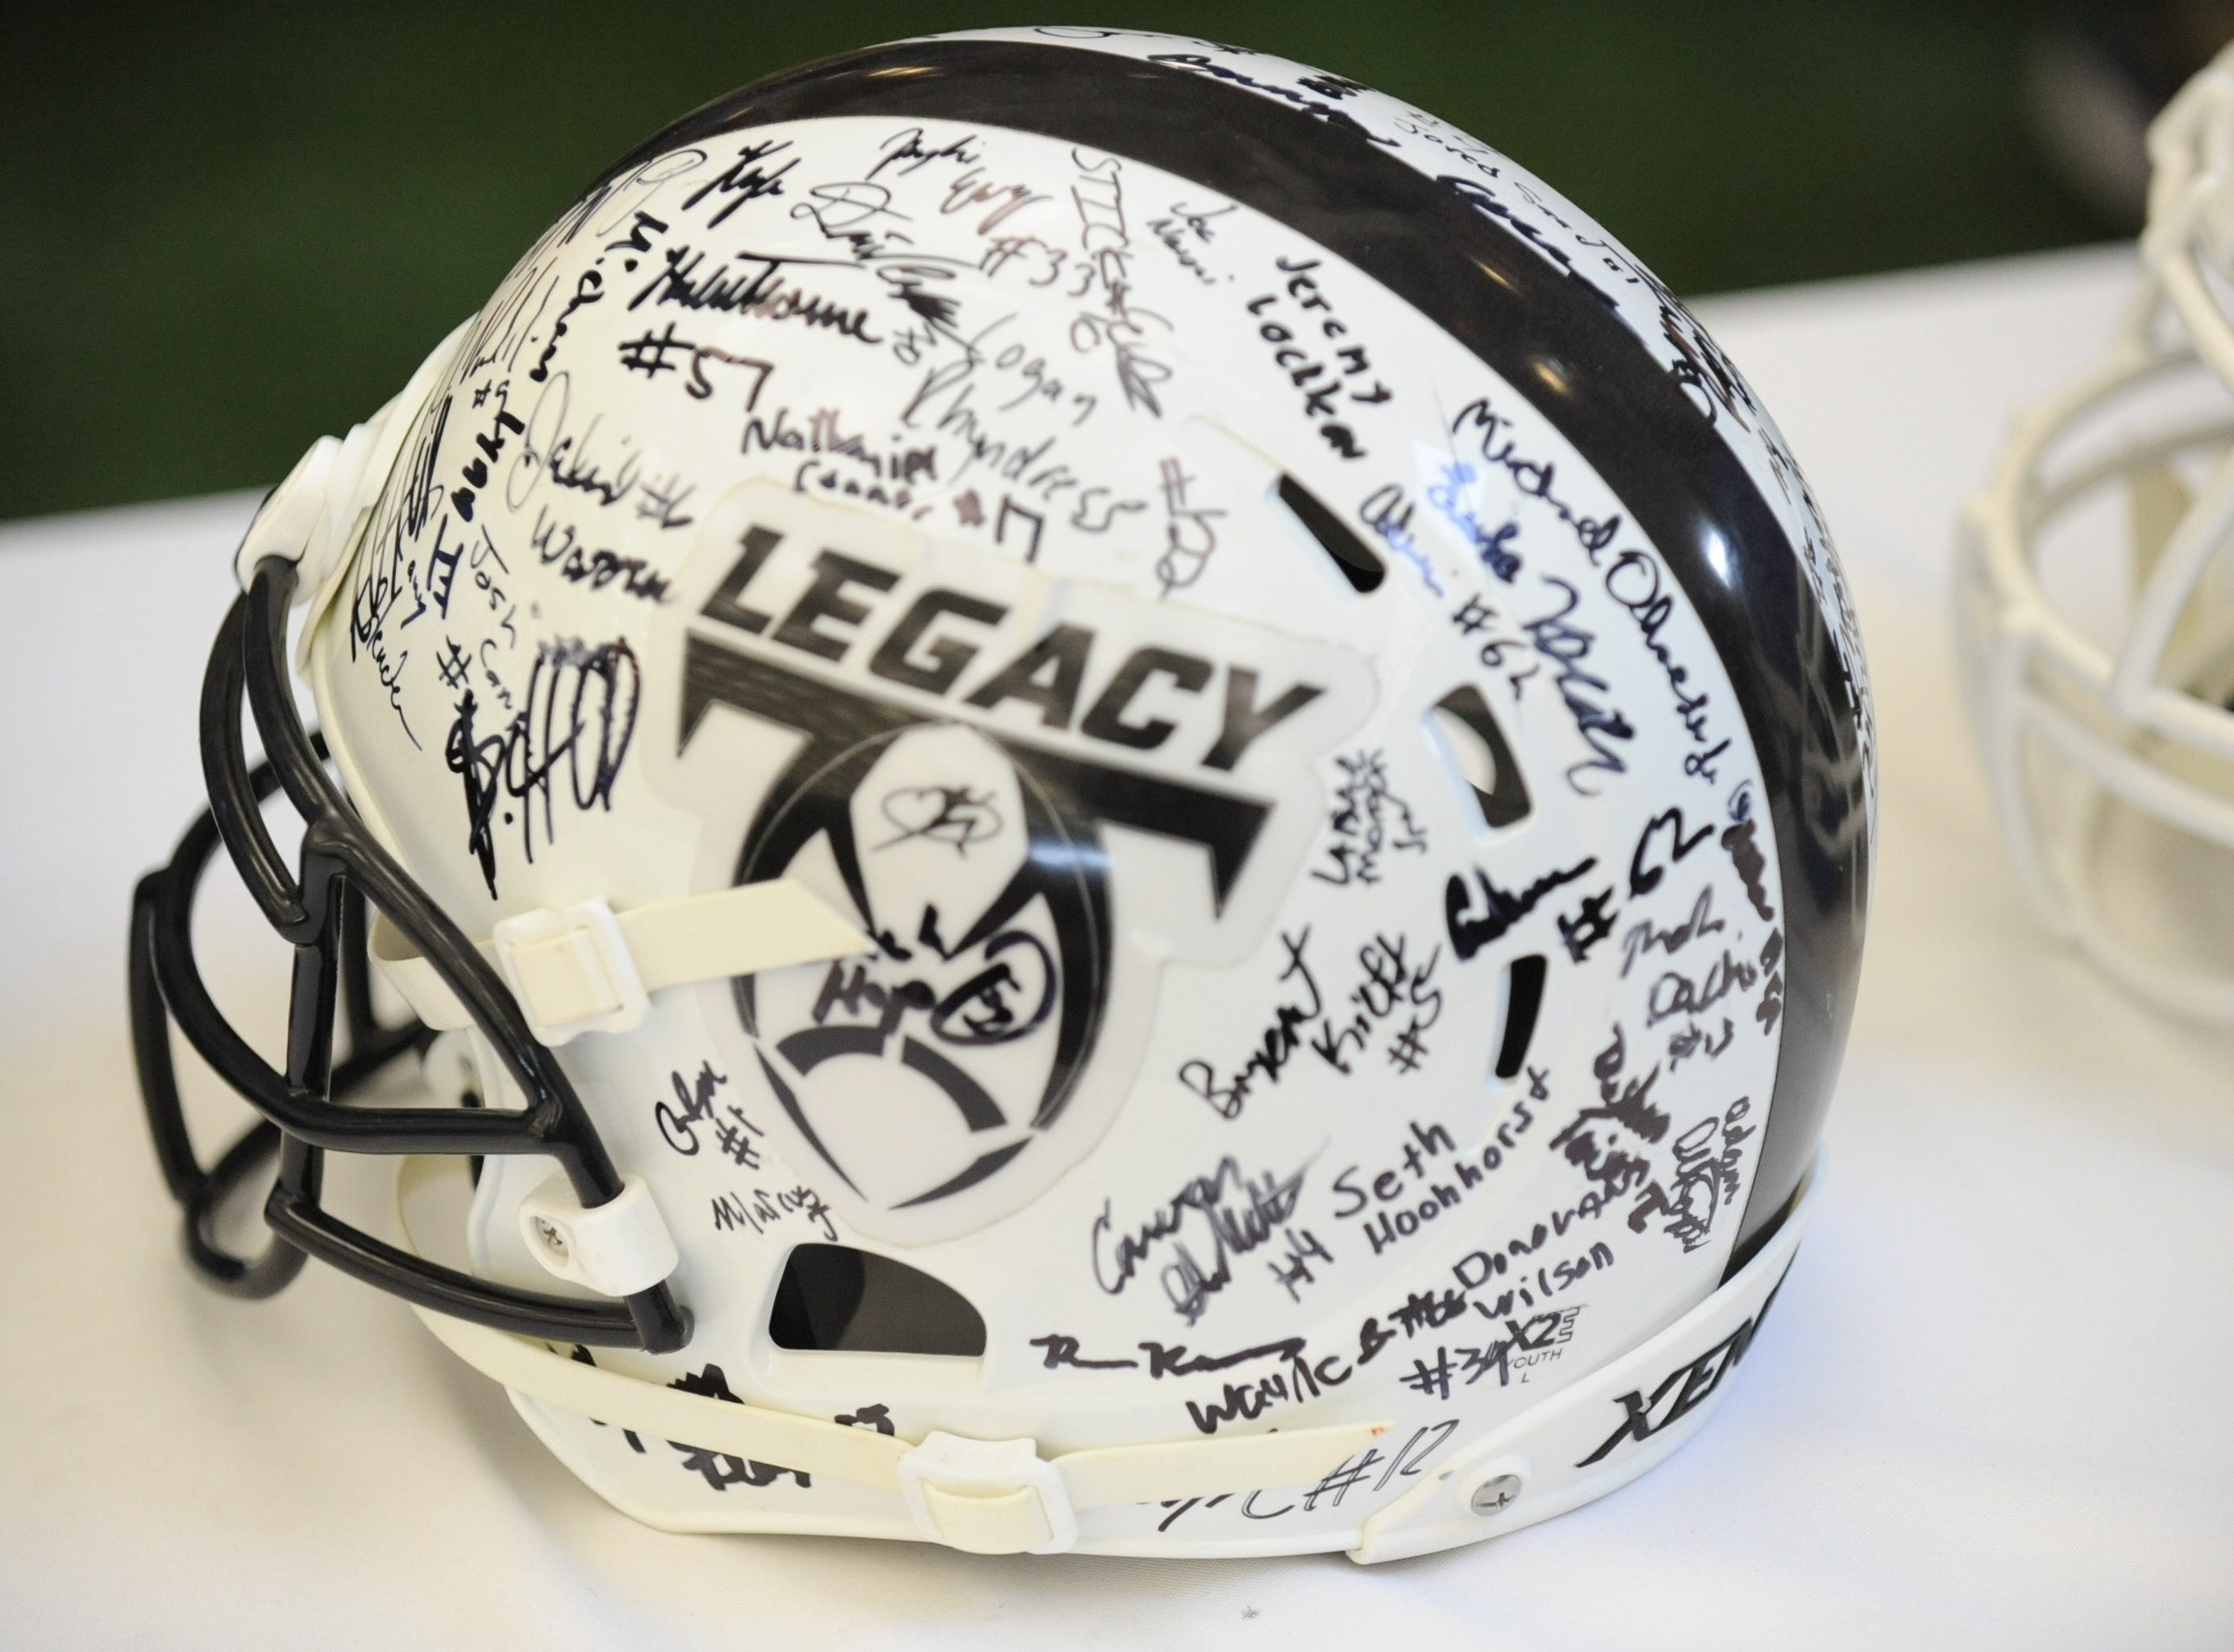 An autographed Legacy football helmet was on display.